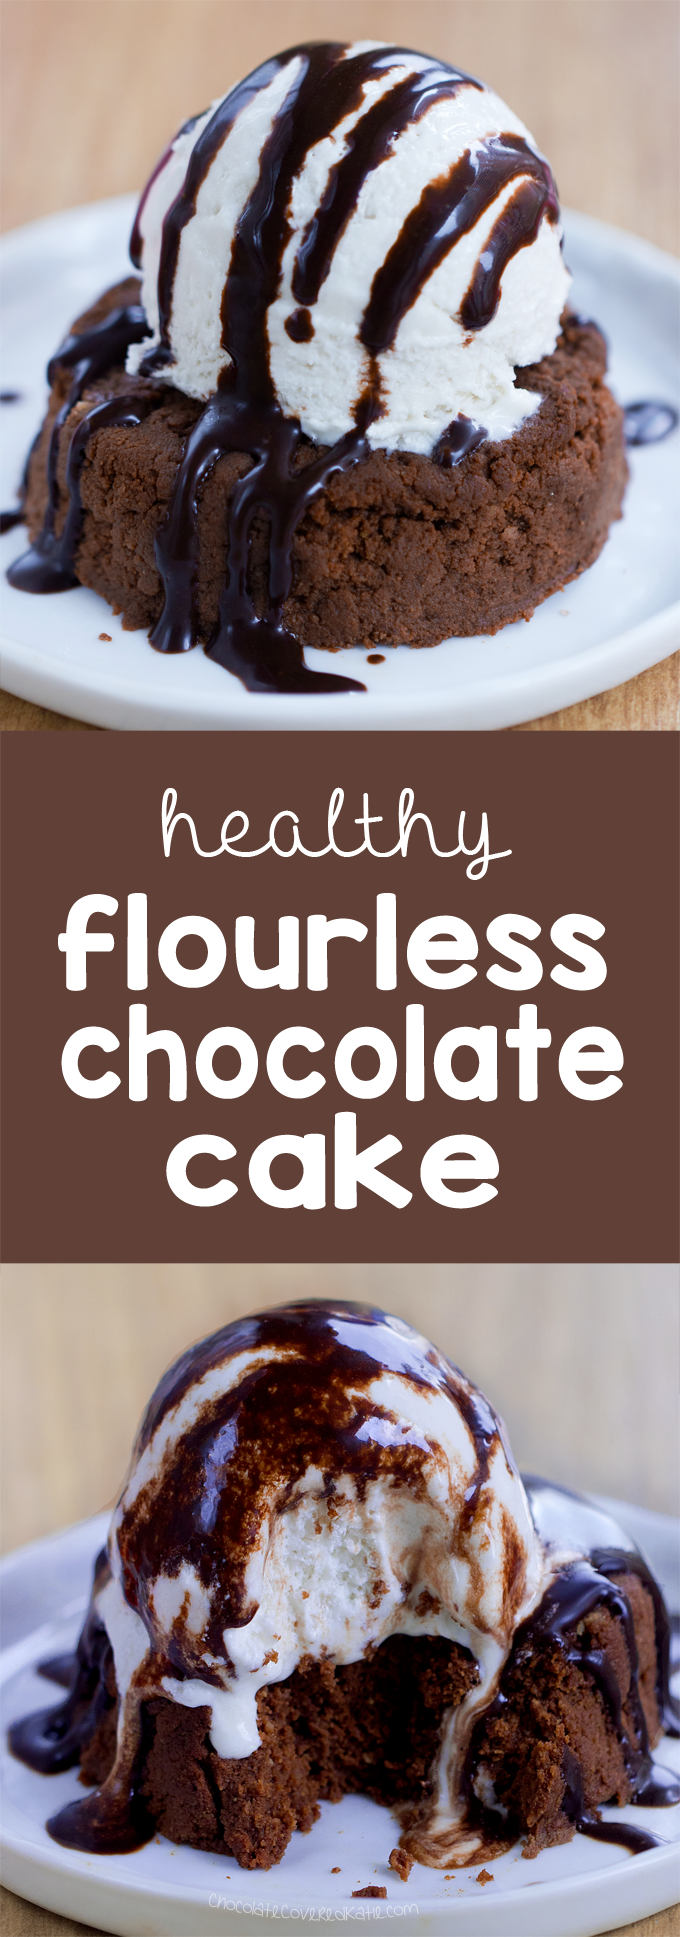 Flourless Chocolate Cake - Ingredients: 1/2 cup cocoa powder, 1/4 tsp baking soda, 2 tsp vanilla extract, 1/2 cup... Full recipe: http://chocolatecoveredkatie.com/ @choccoveredkt